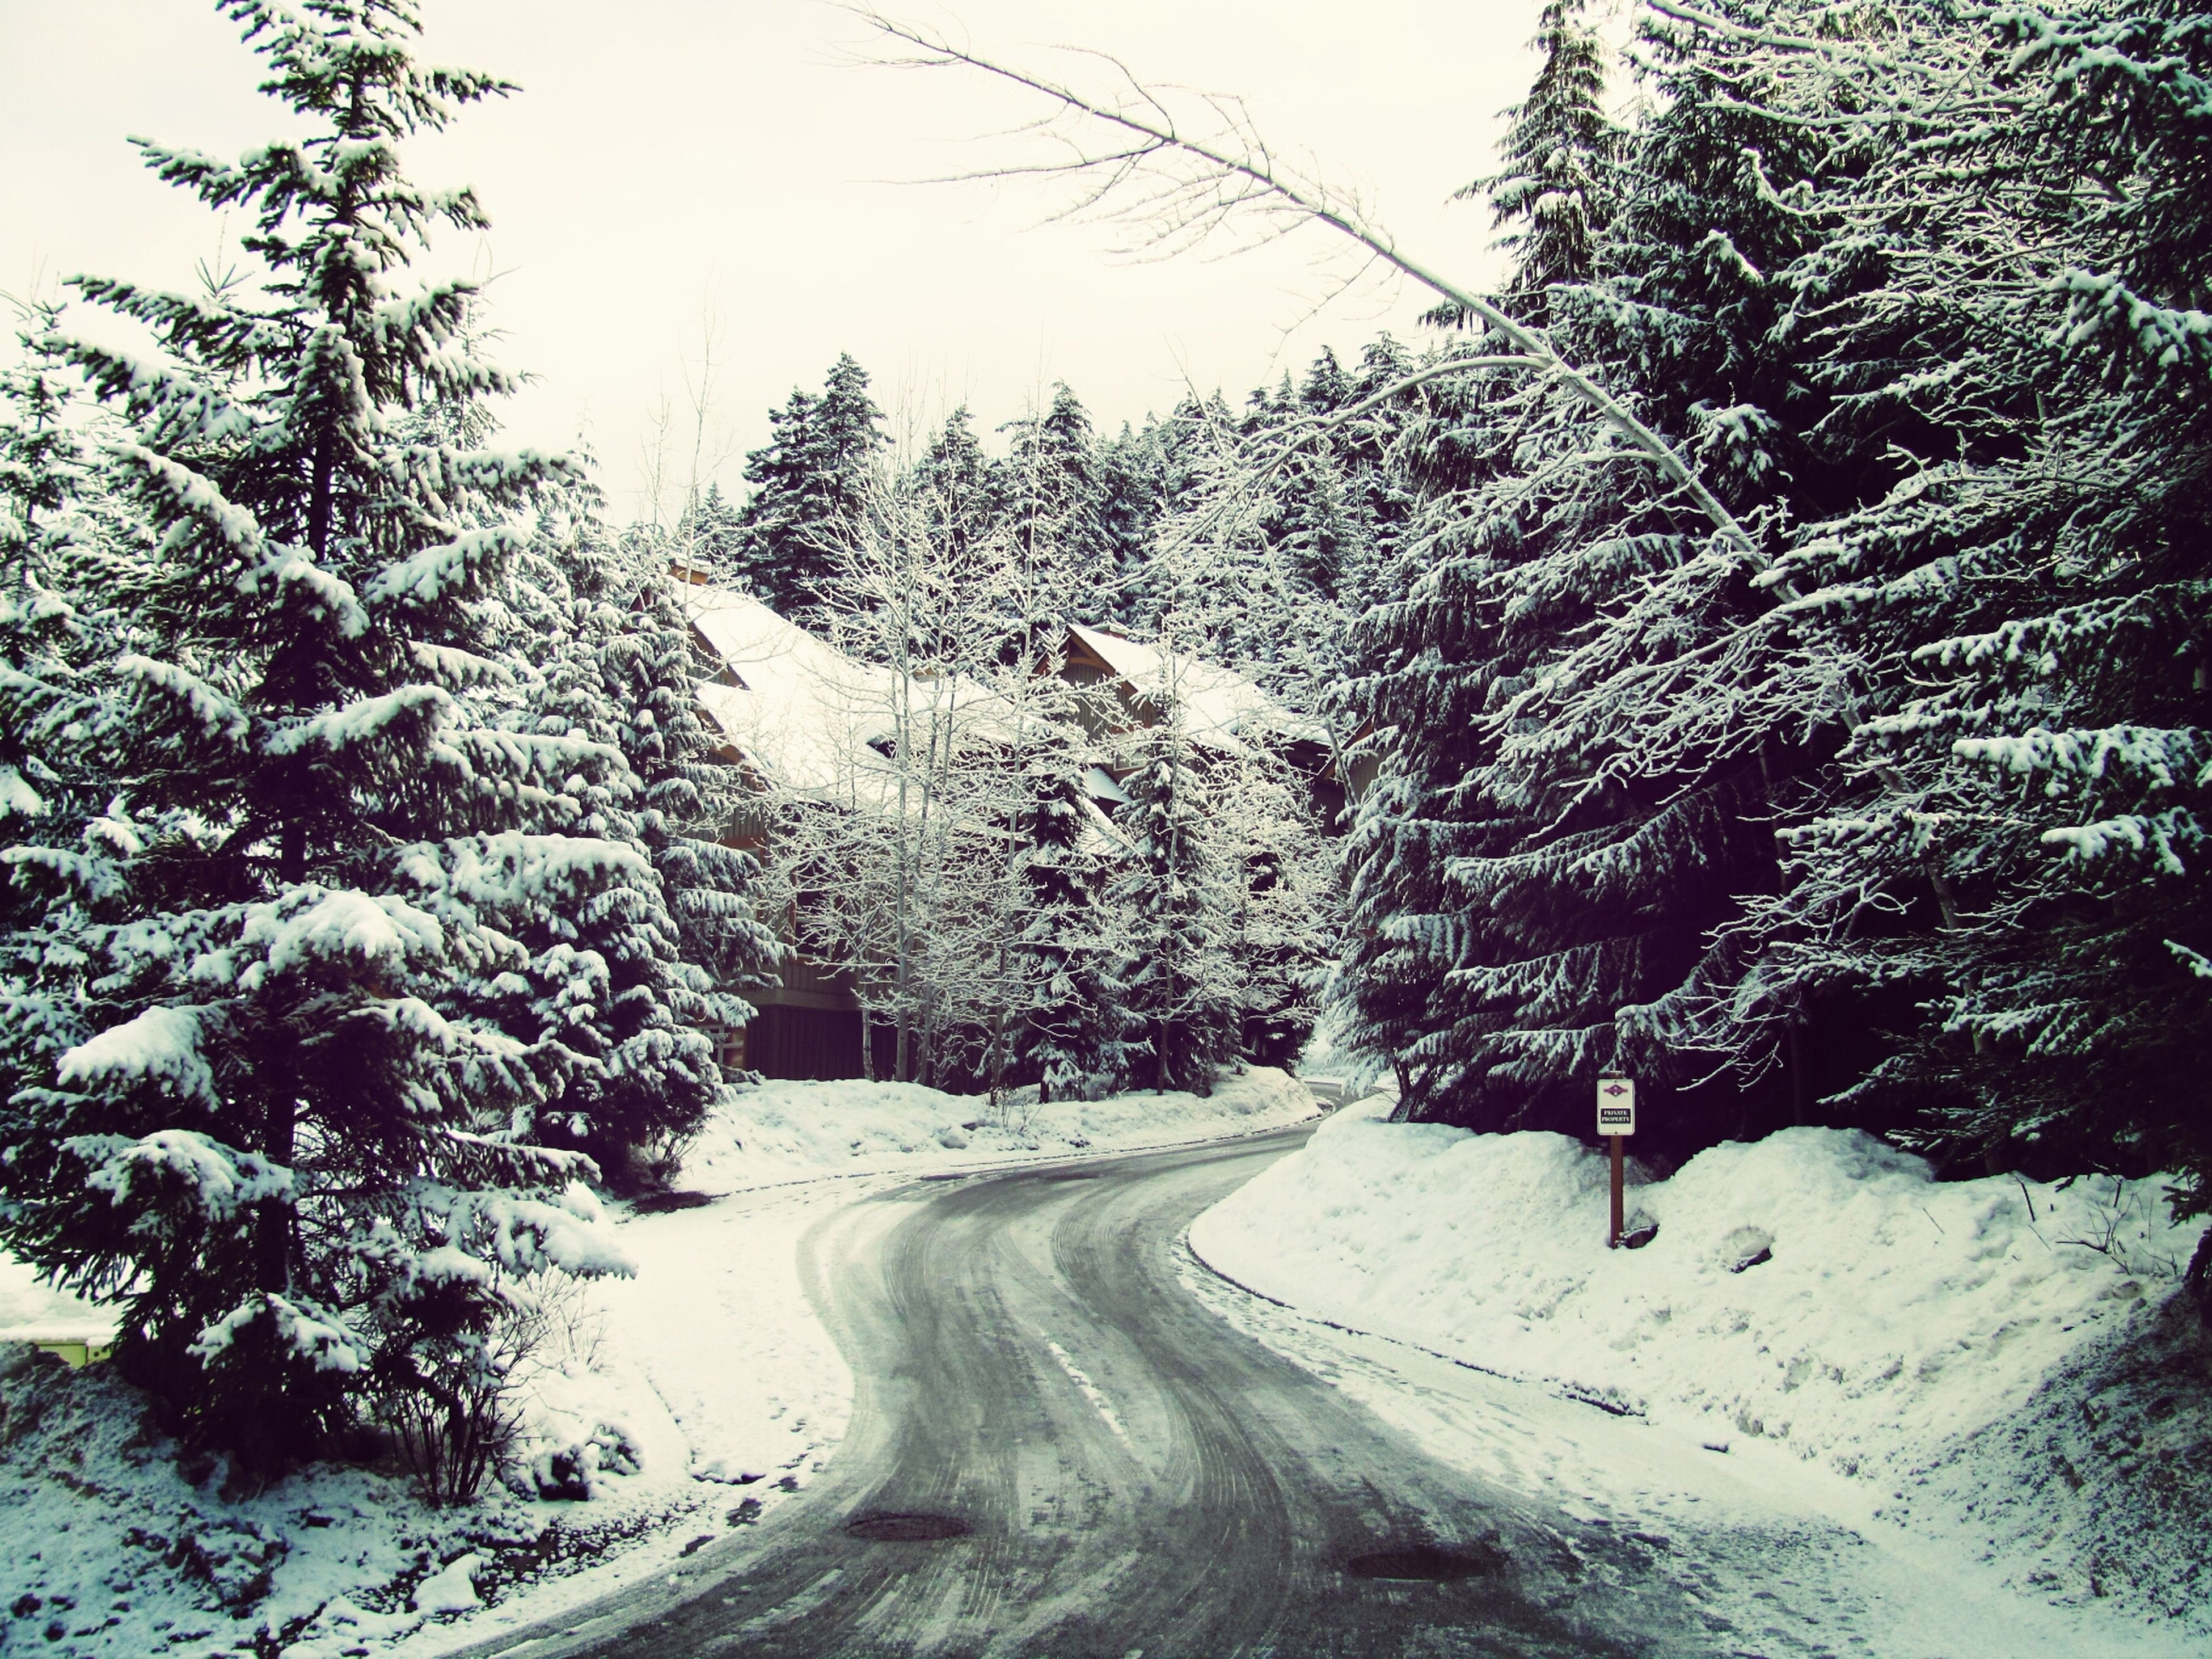 snow, winter, cold temperature, season, weather, tree, covering, road, nature, white color, tranquility, tranquil scene, frozen, the way forward, beauty in nature, scenics, landscape, covered, transportation, mountain